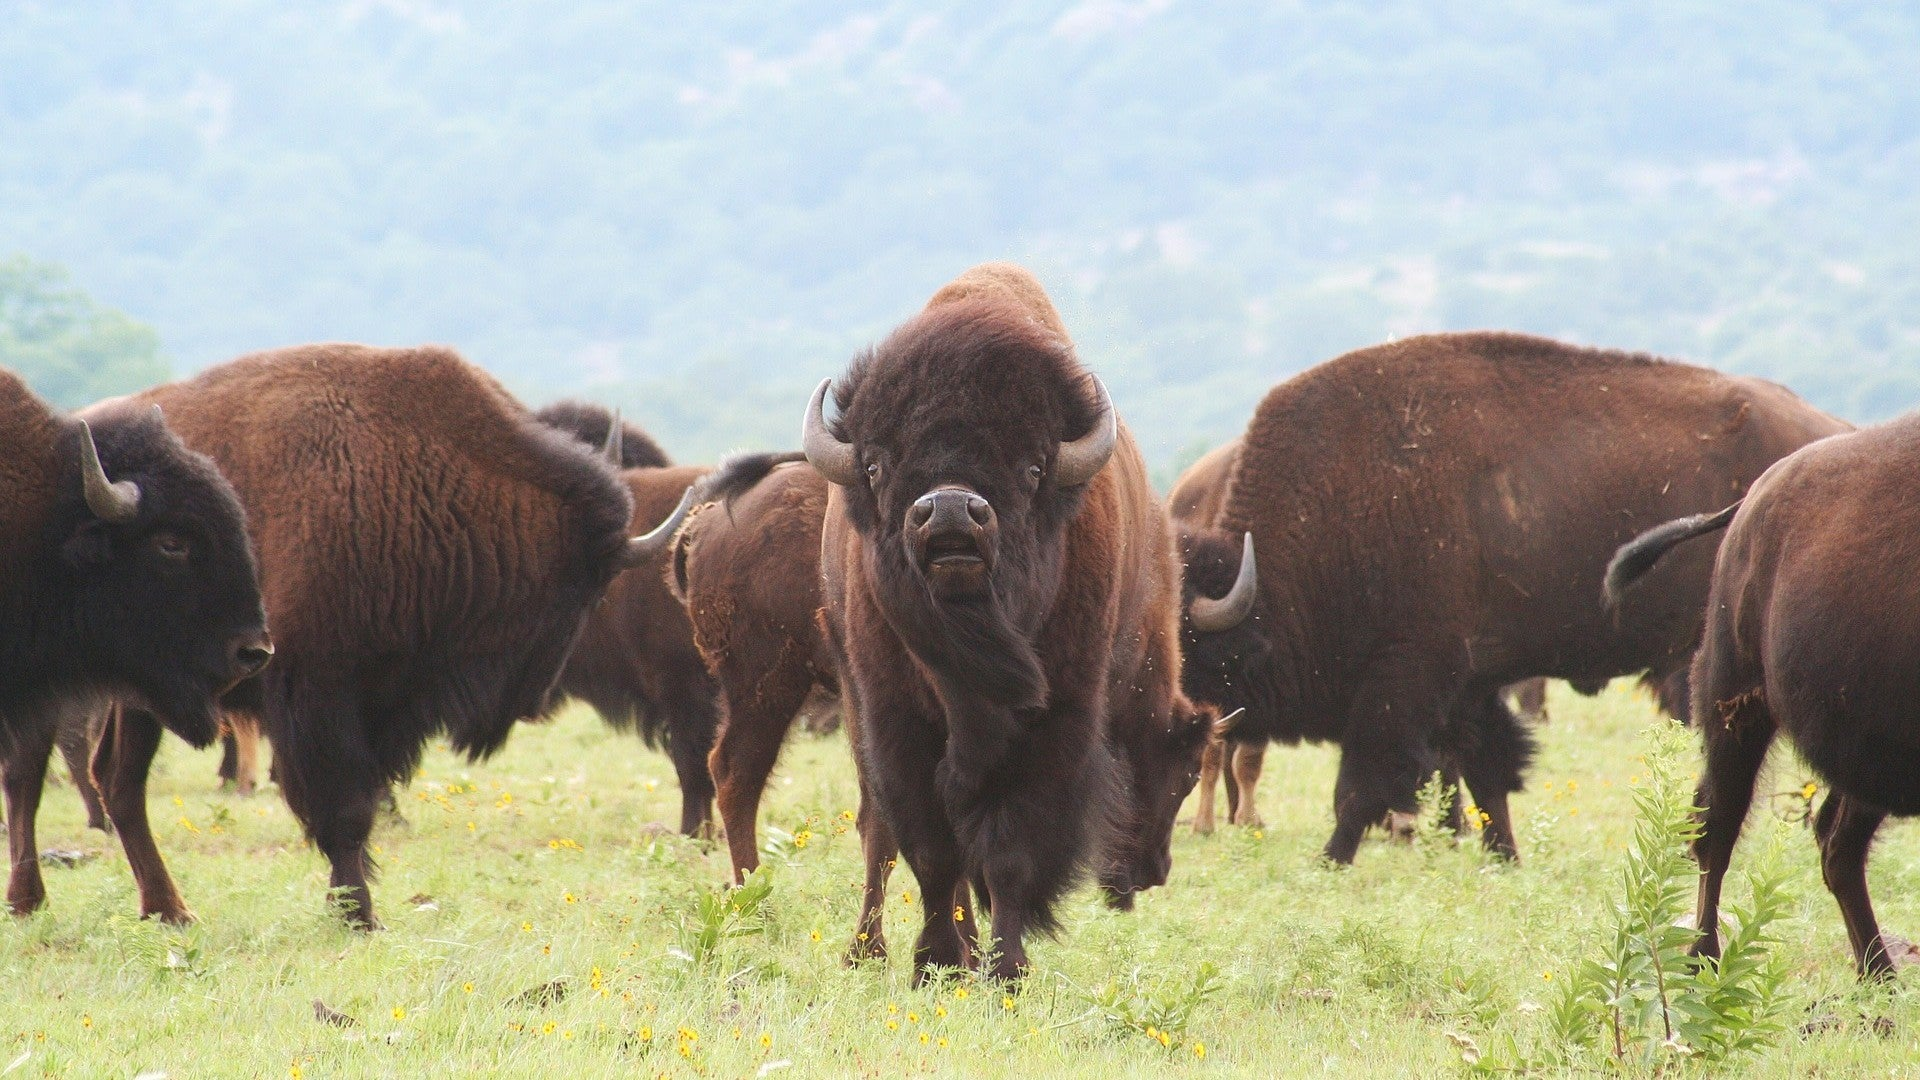 If You're Visiting The United States, Step Away From The Bison